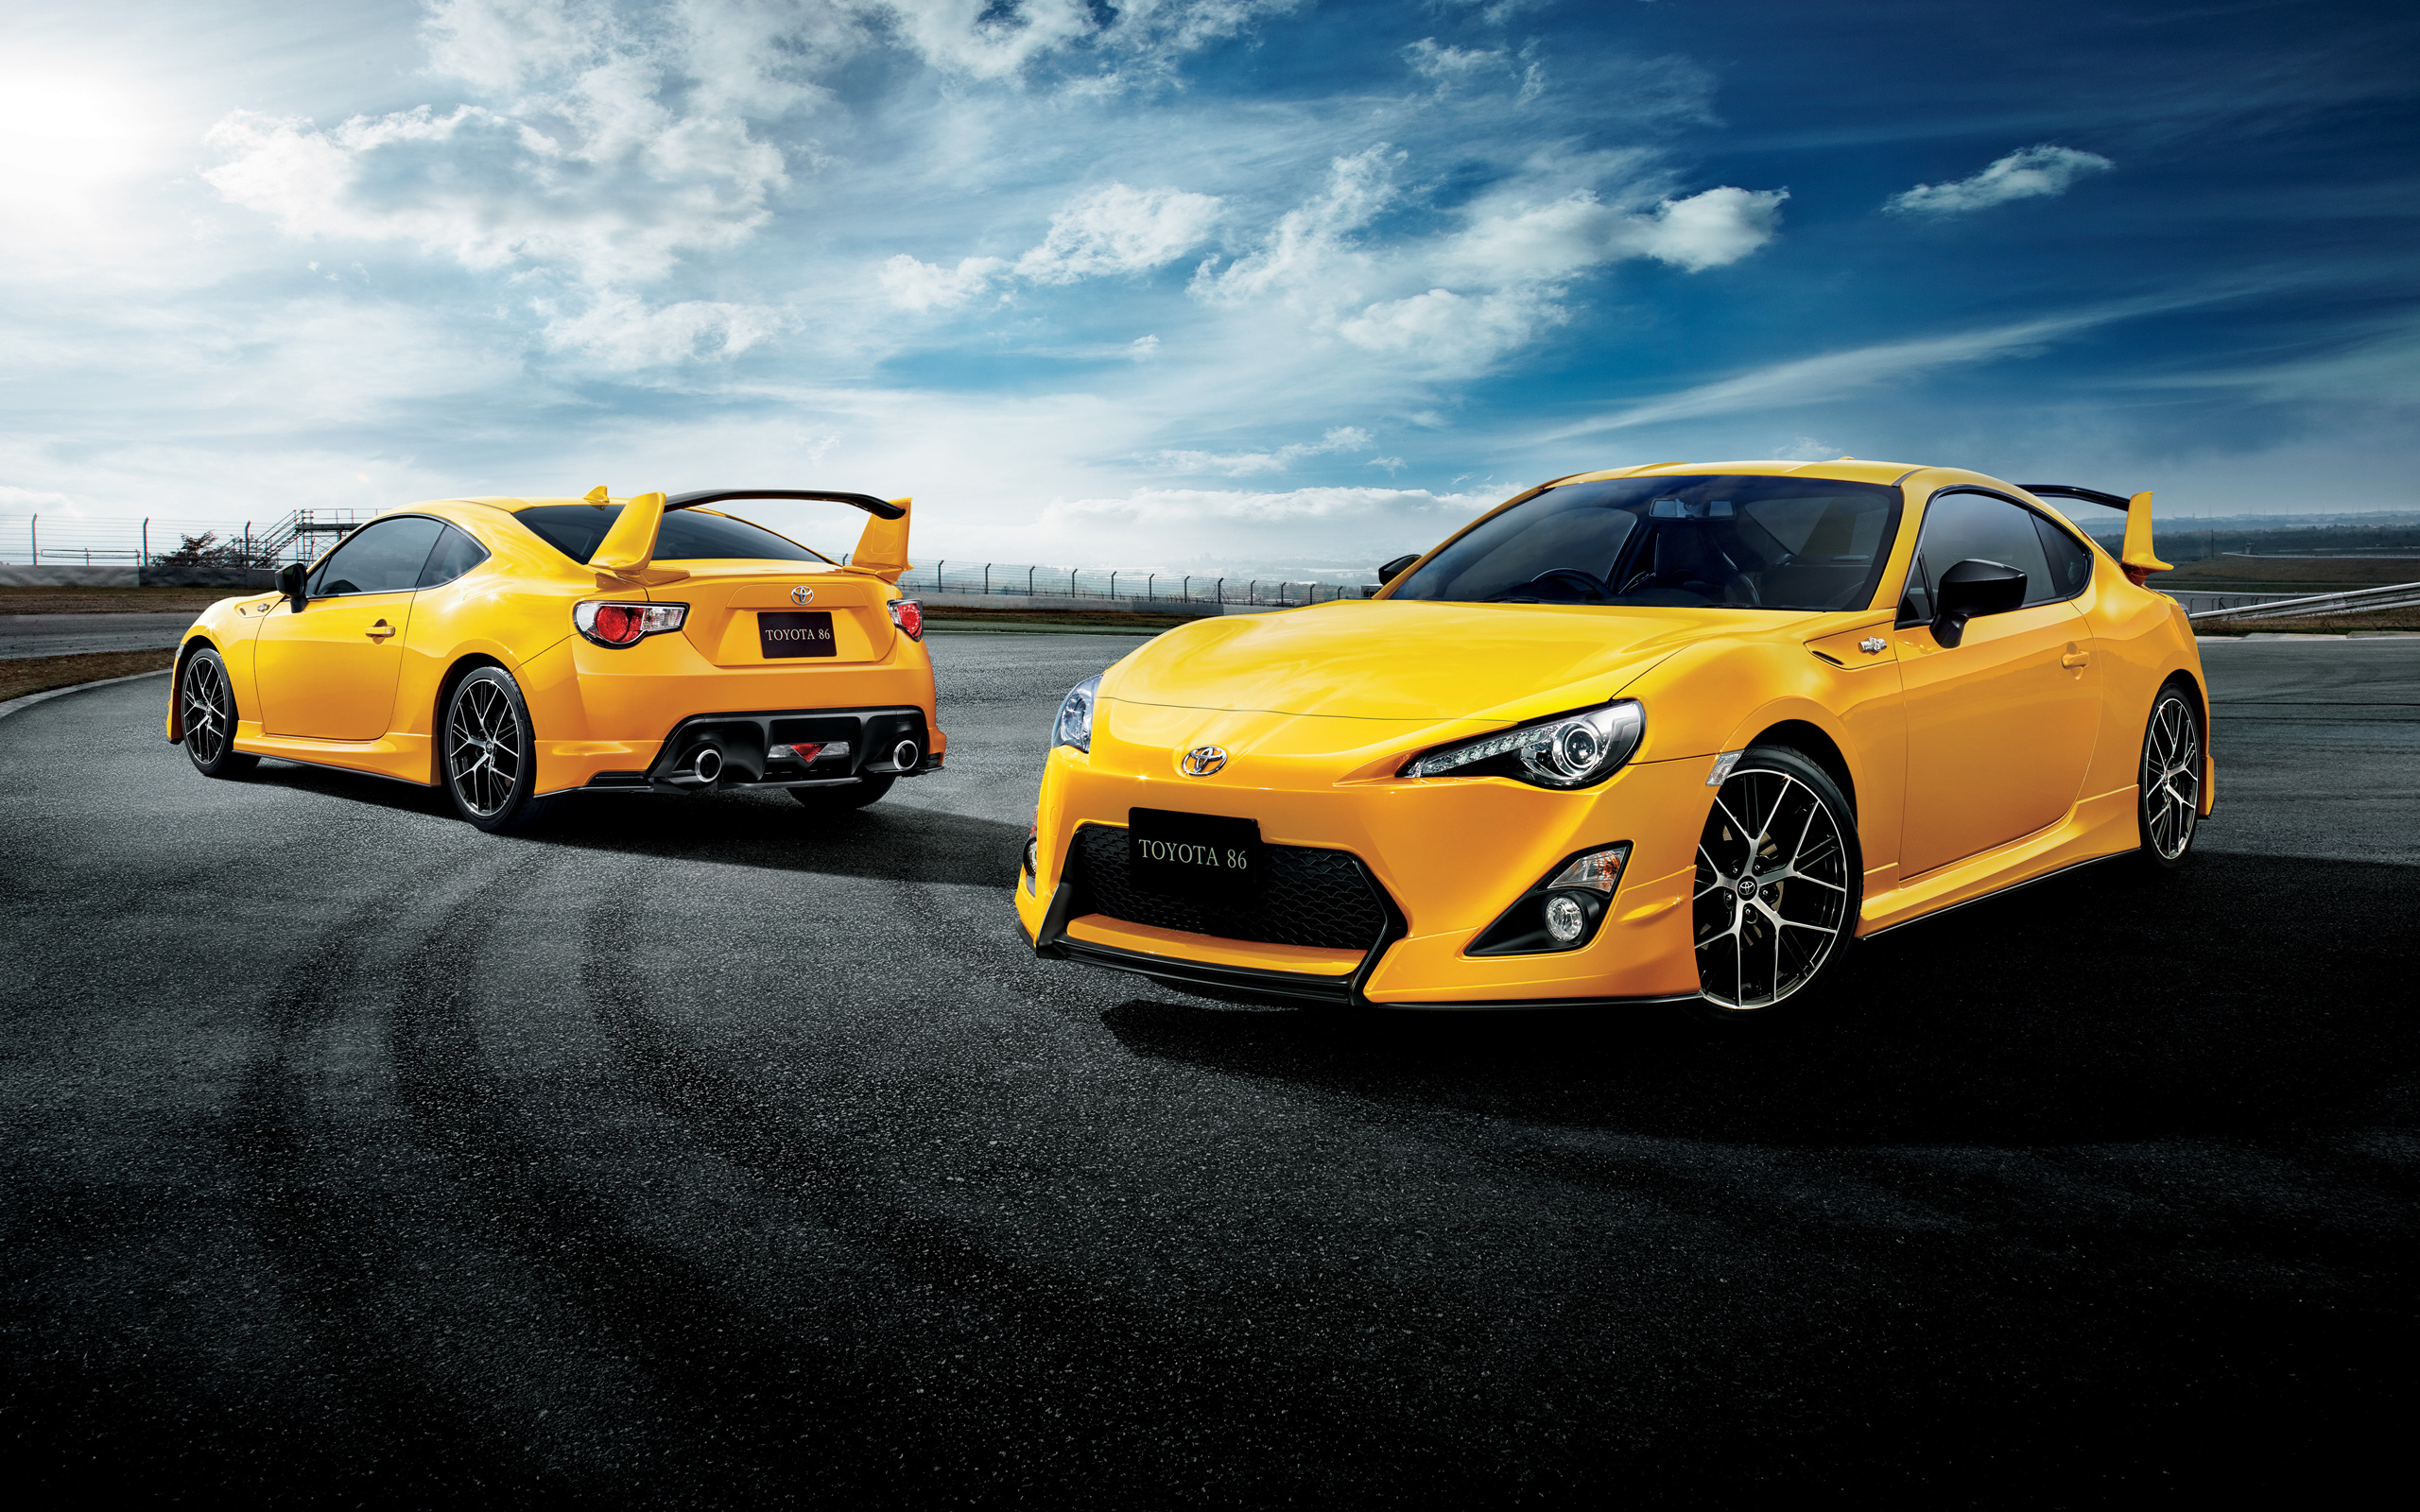 Toyota 86 Wallpapers and Background Images   stmednet 2560x1600